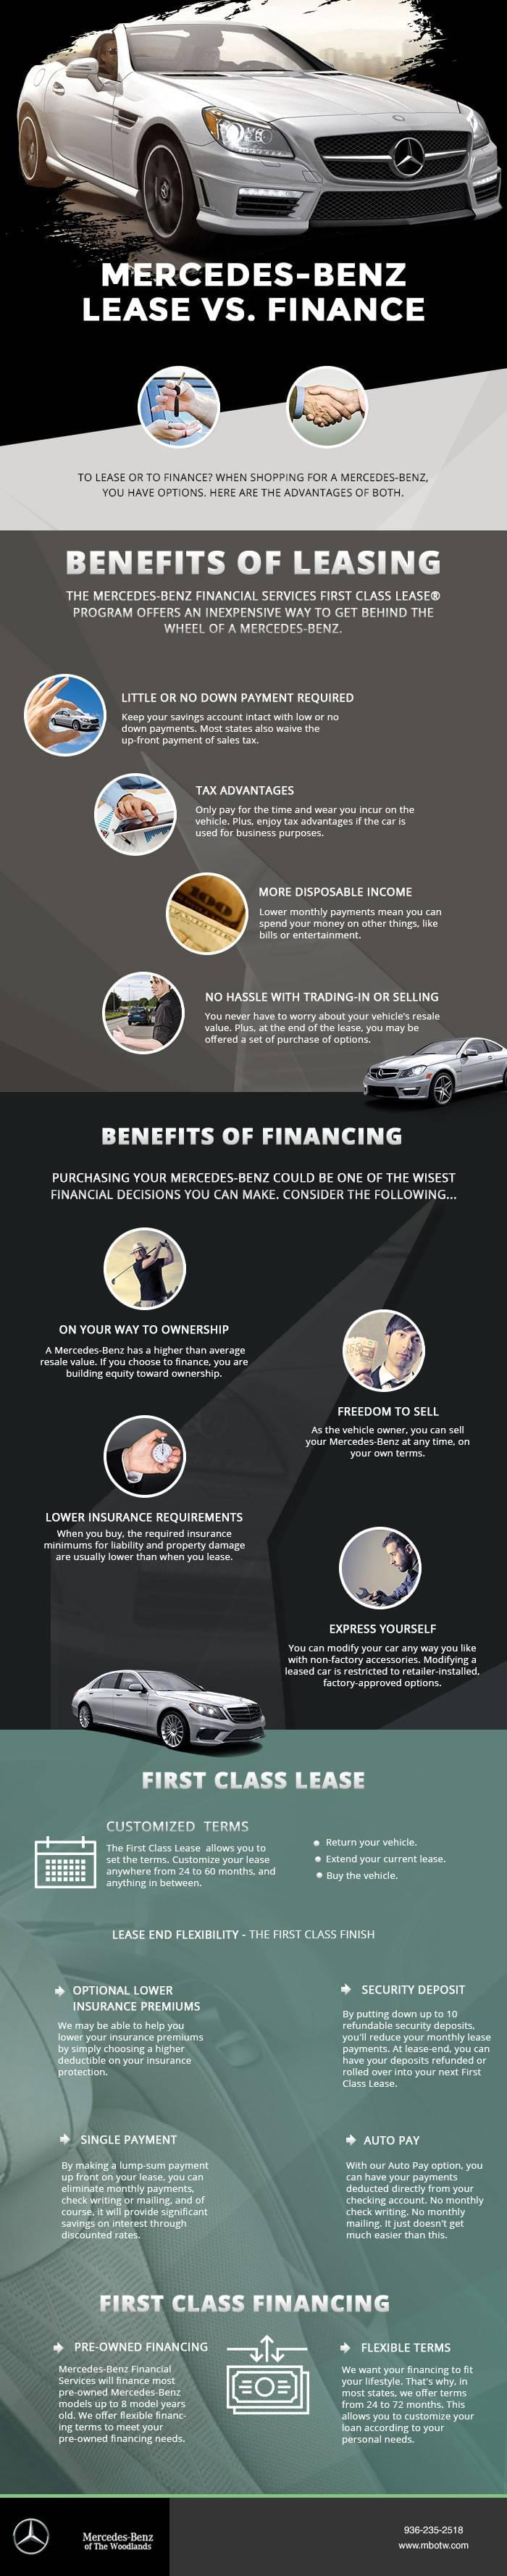 mercedes-benz-lease-vs-finance